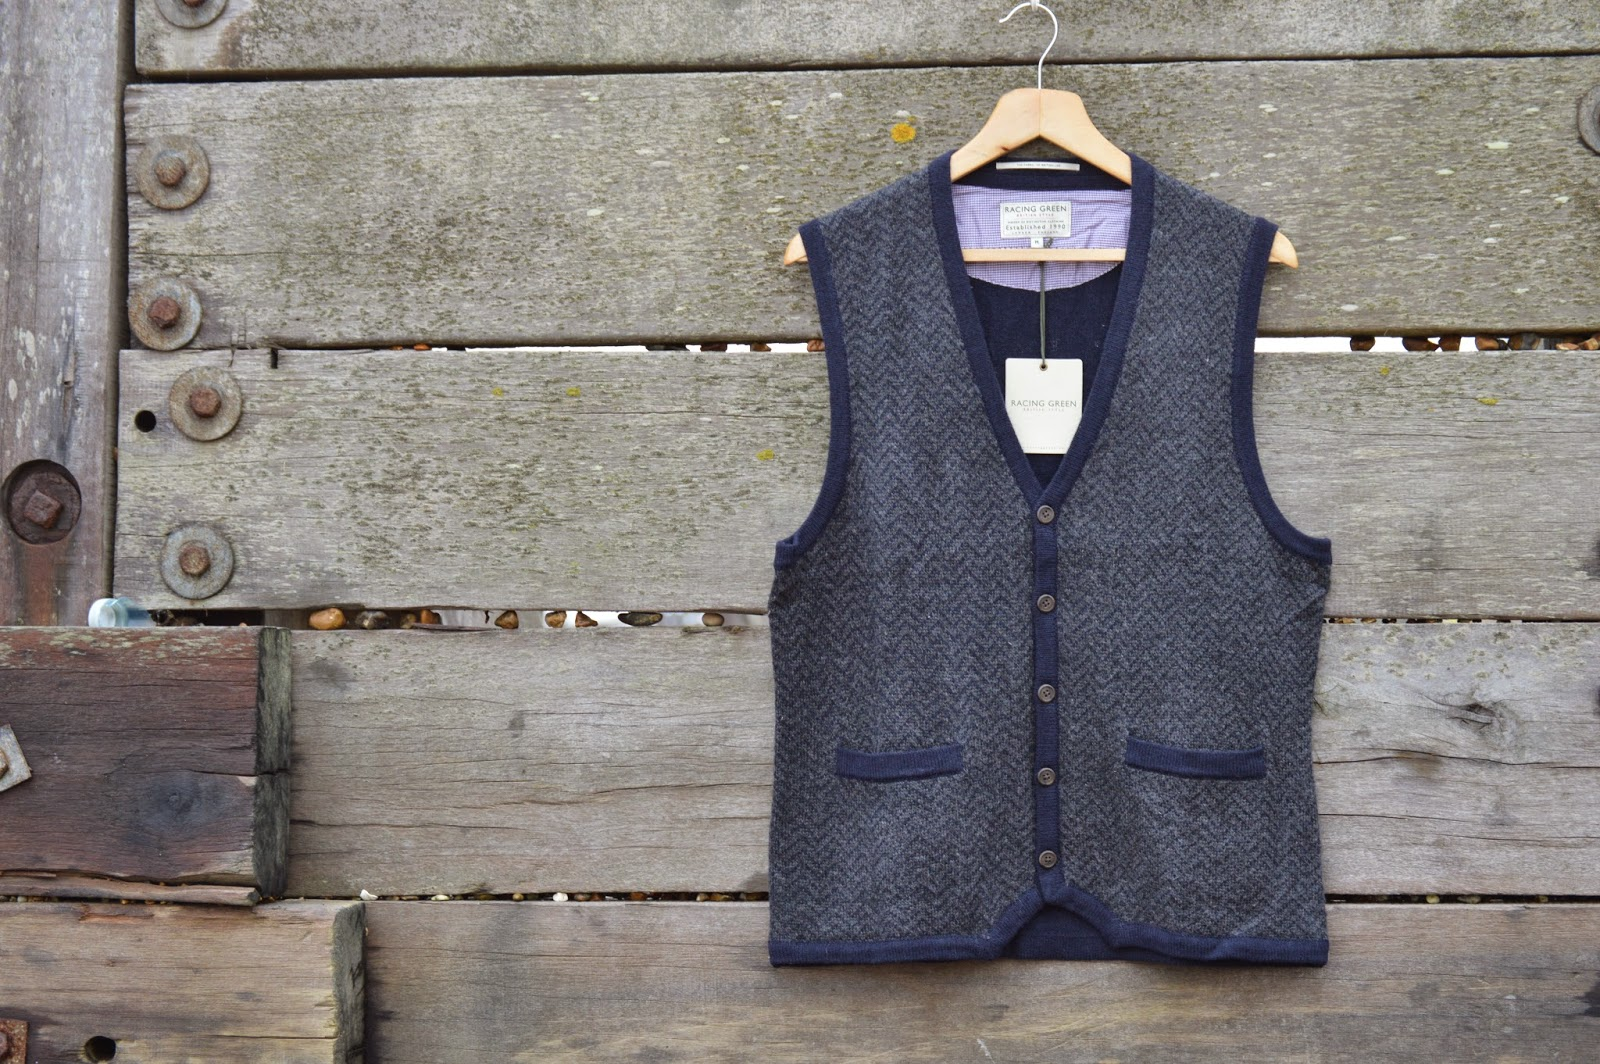 http://www.awin1.com/cread.php?awinmid=6033&awinaffid=!!!id!!!&clickref=&p=http://www.racinggreen.co.uk/p-catwick_knitted_tank-1022